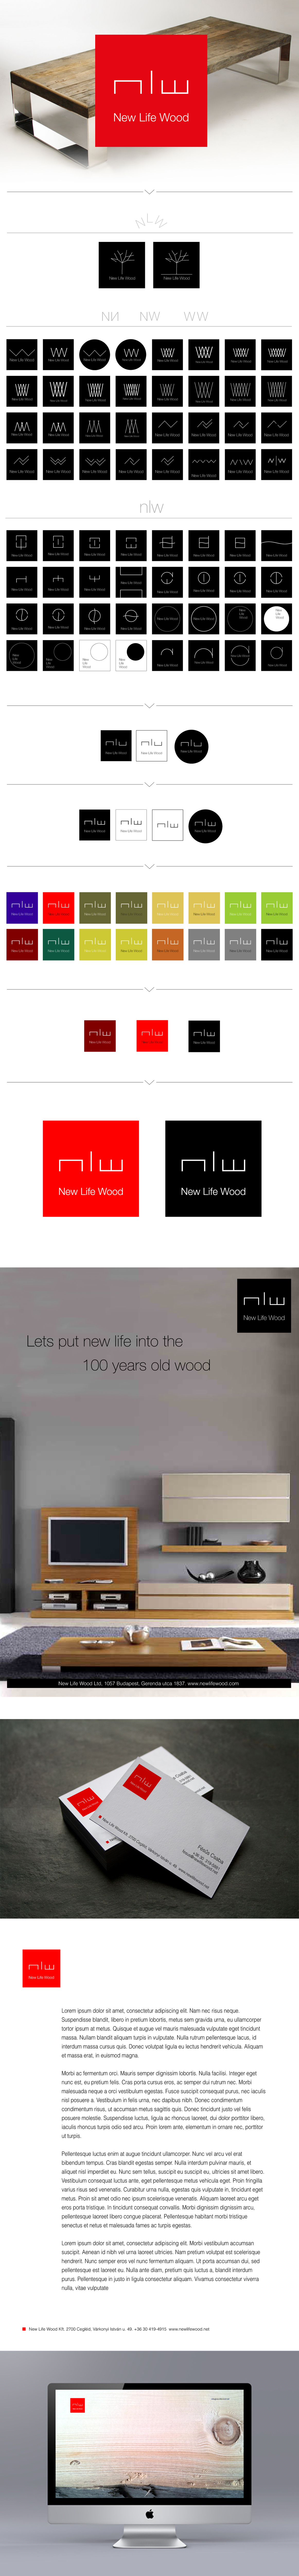 Showcase New Life Wood LOGO